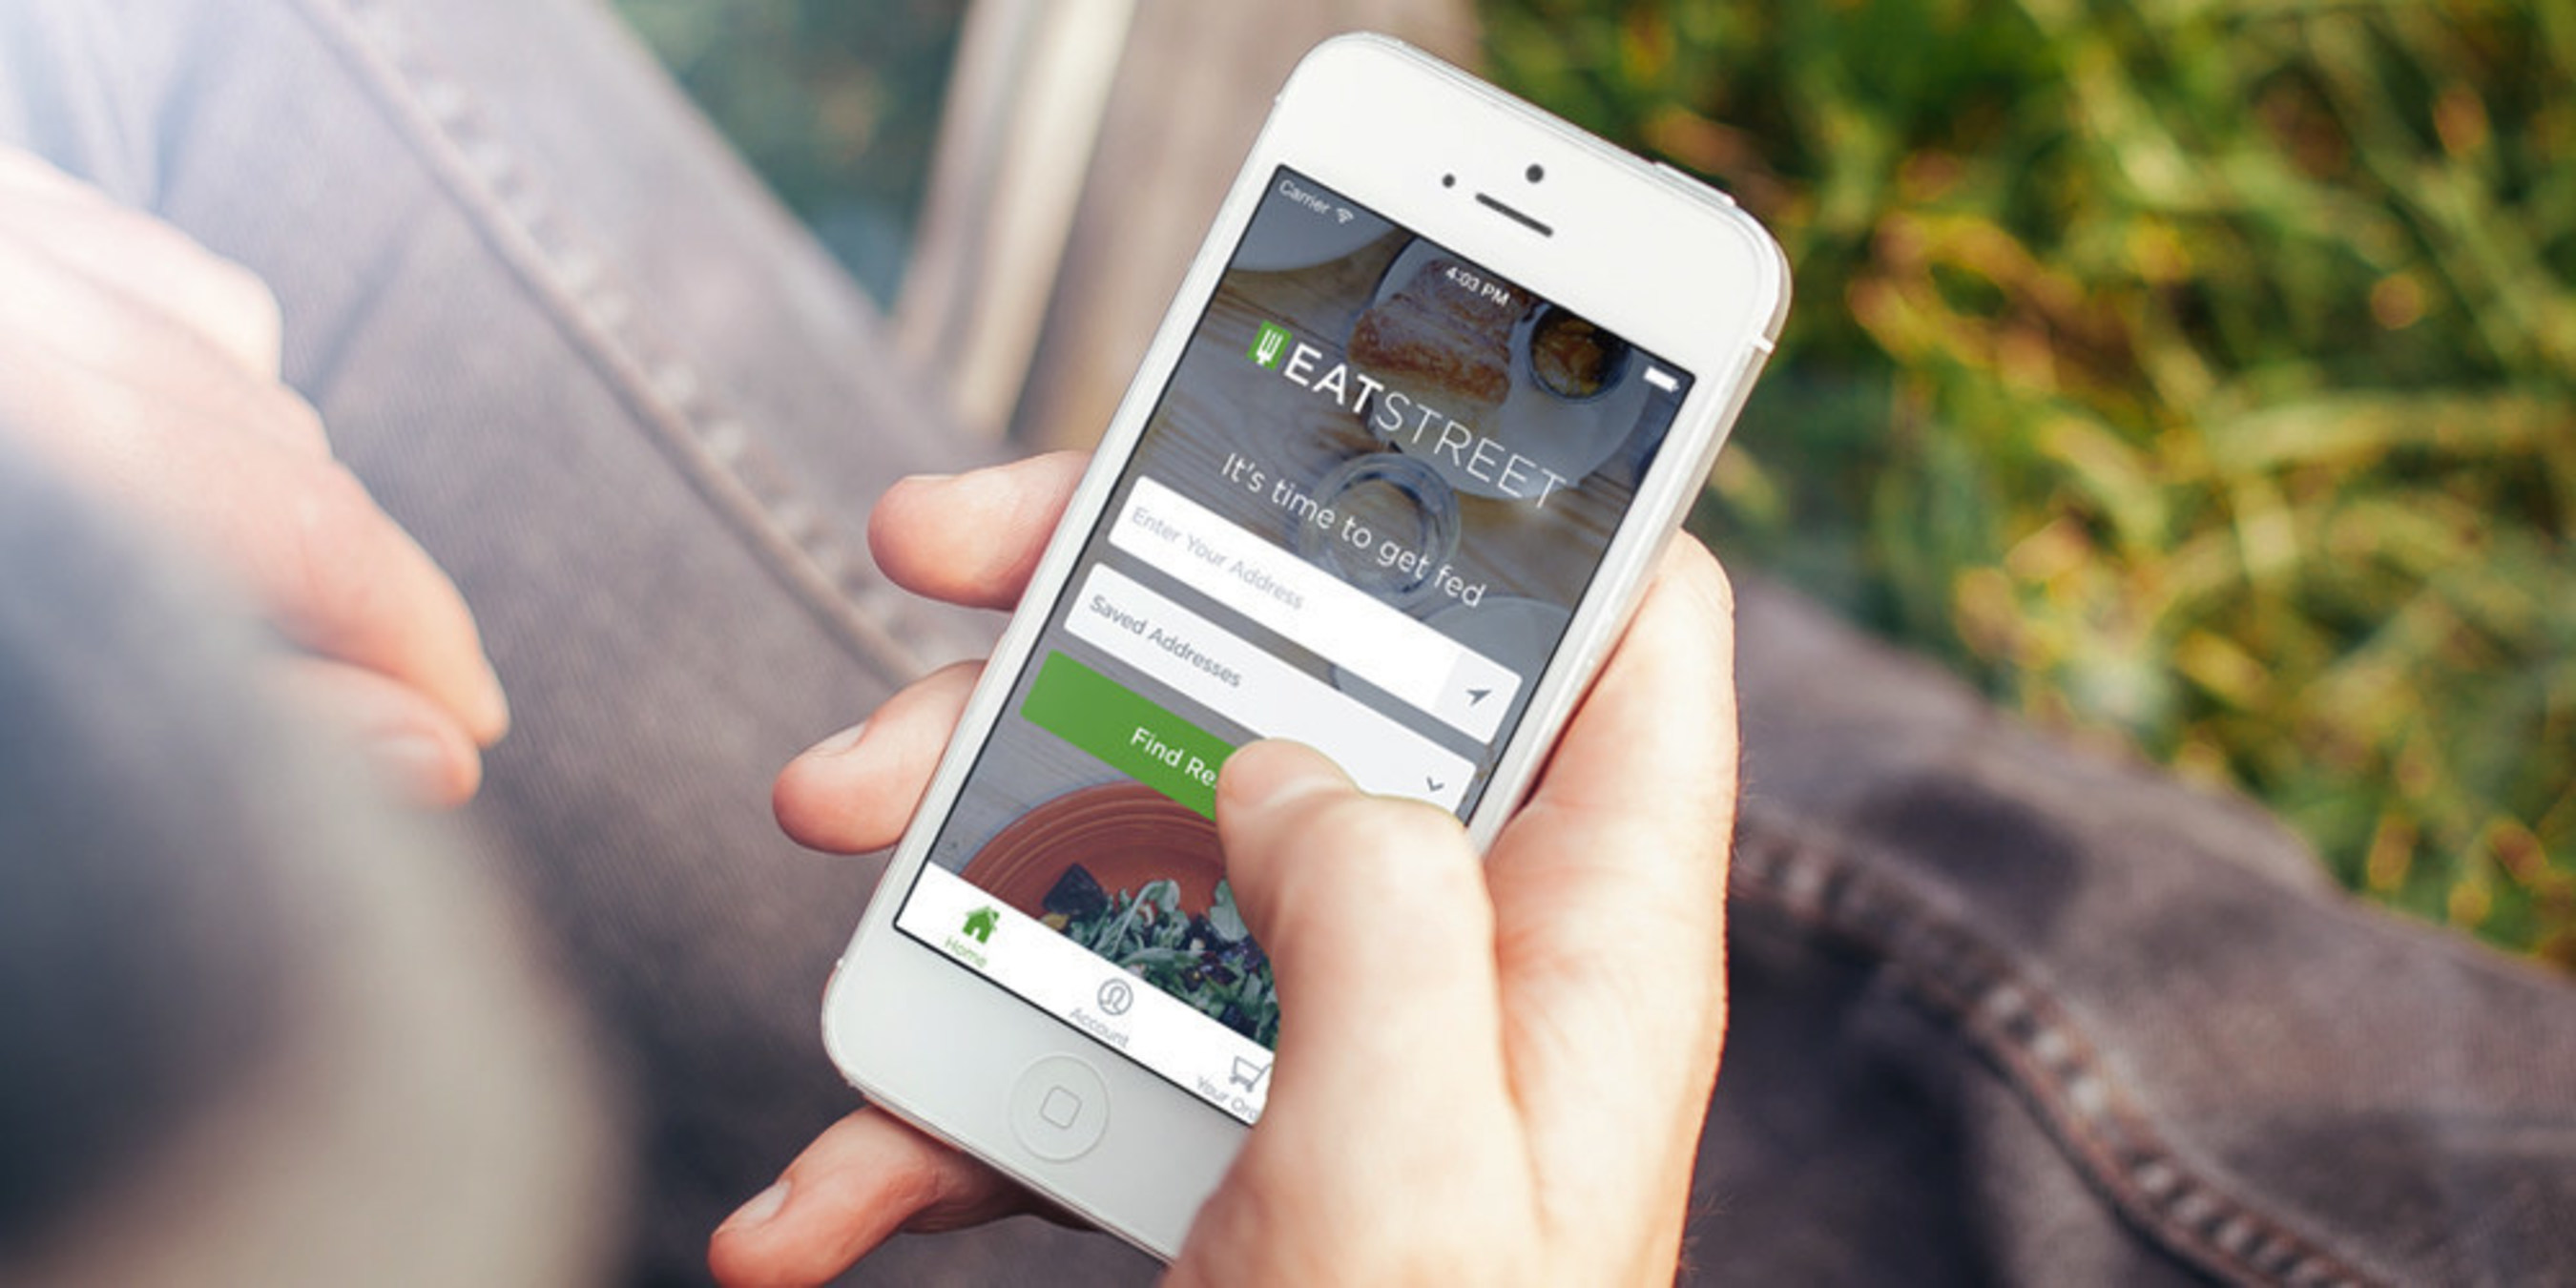 Hungry diners can use the free EatStreet app to find nearby restaurants, browse menus, read reviews, get exclusive coupons, and quickly order delivery & takeout.